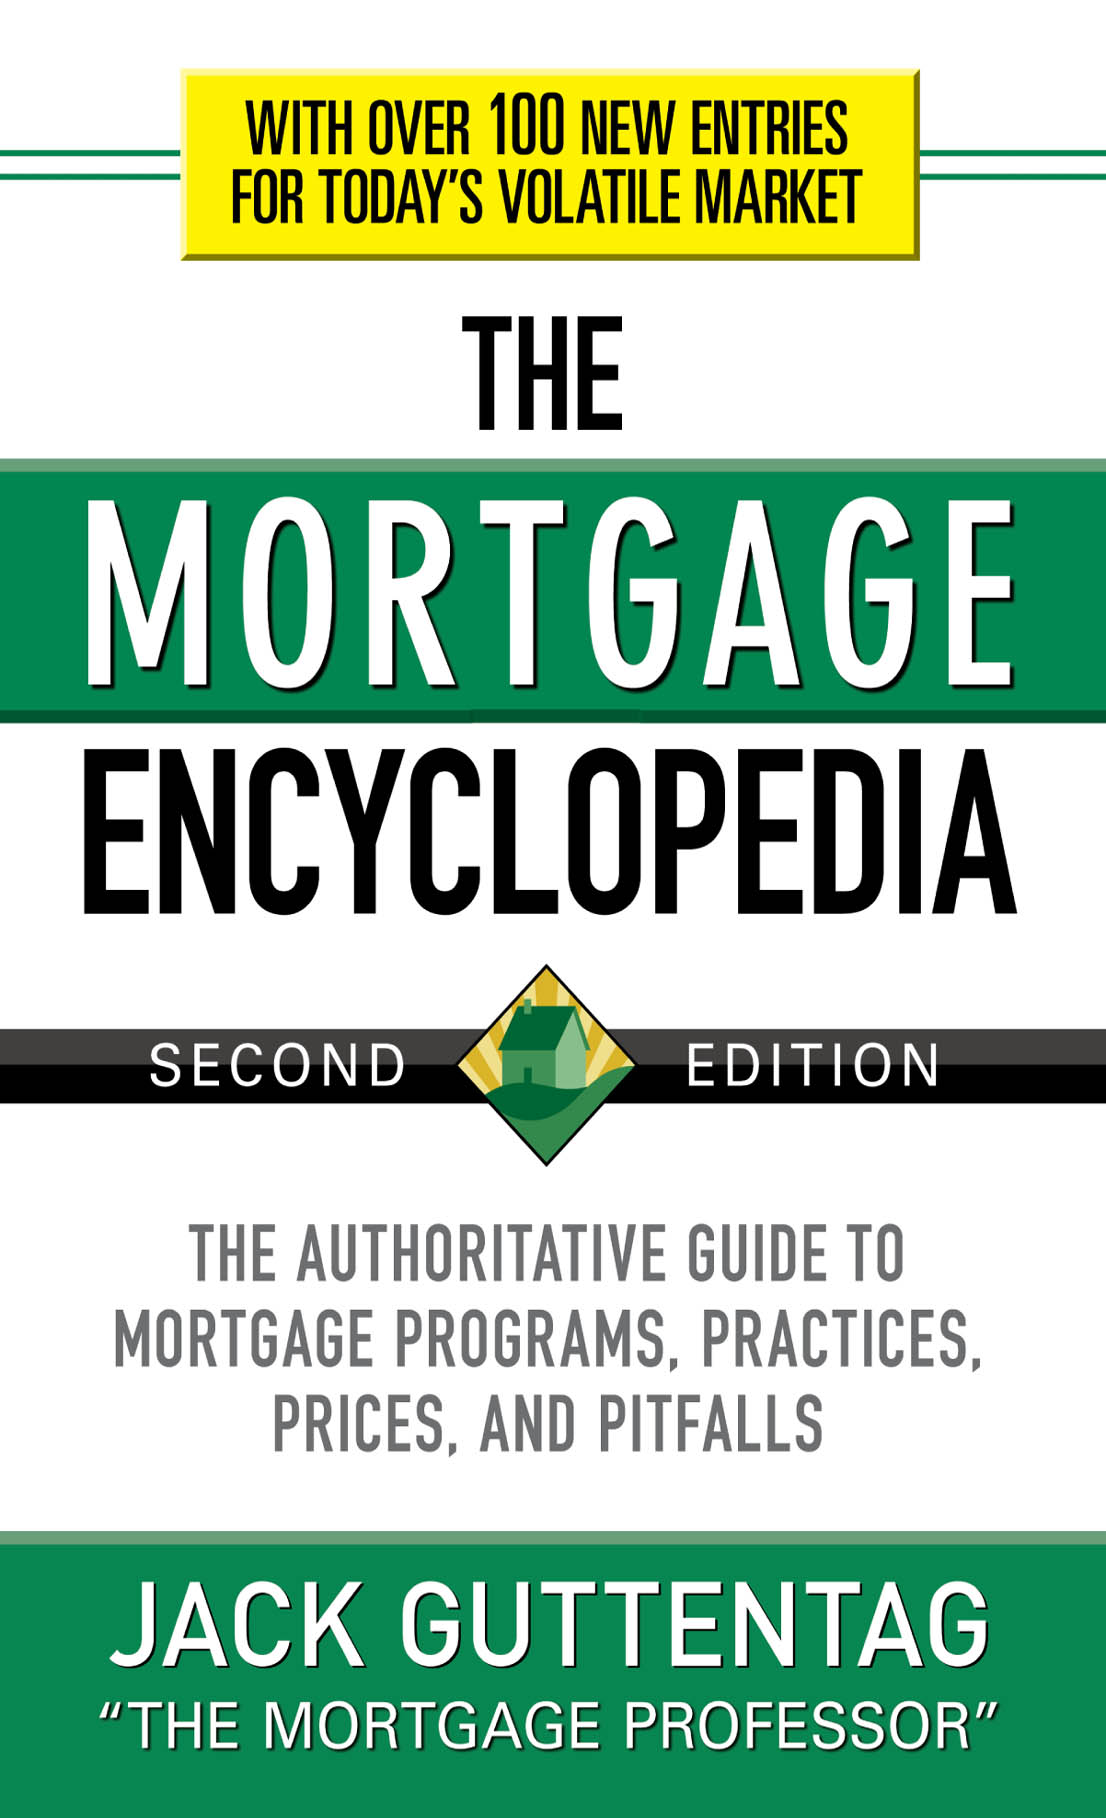 Download Ebook The Mortgage Encyclopedia: The Authoritative Guide to Mortgage Programs, Practices, Prices and Pitfalls, Second Edition (2nd ed.) by Jack Guttentag Pdf